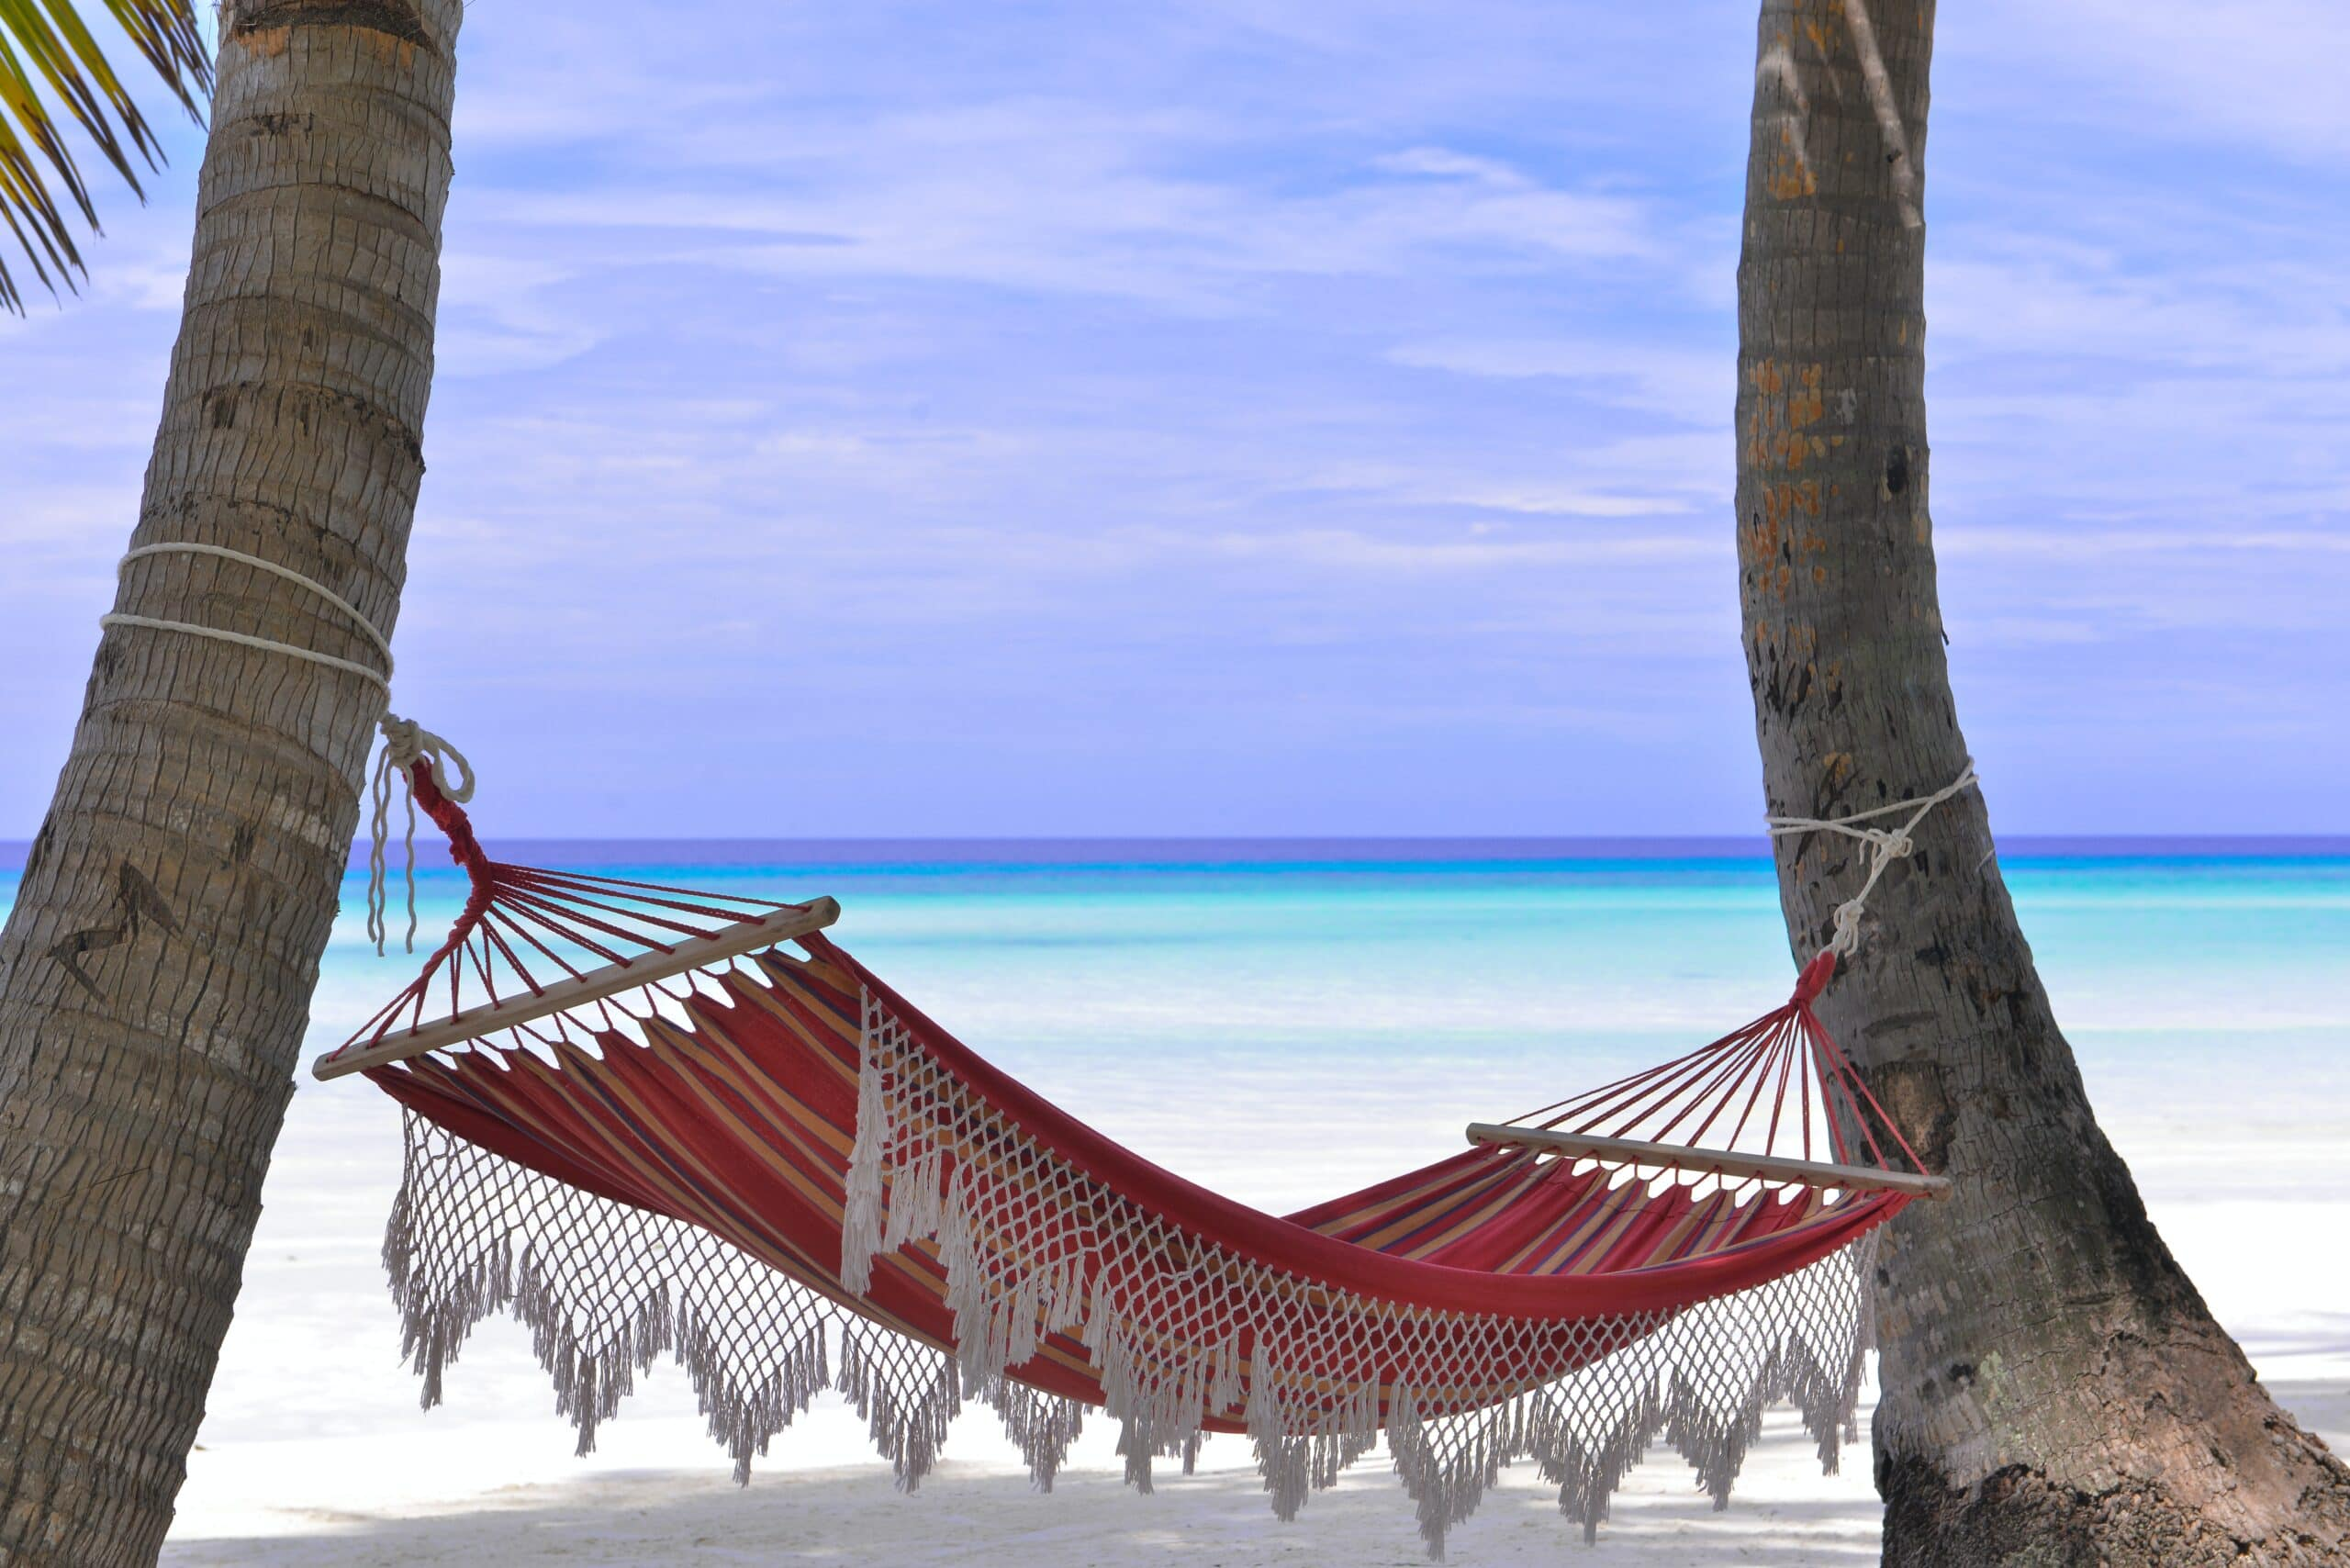 Can I Crochet A Hammock?